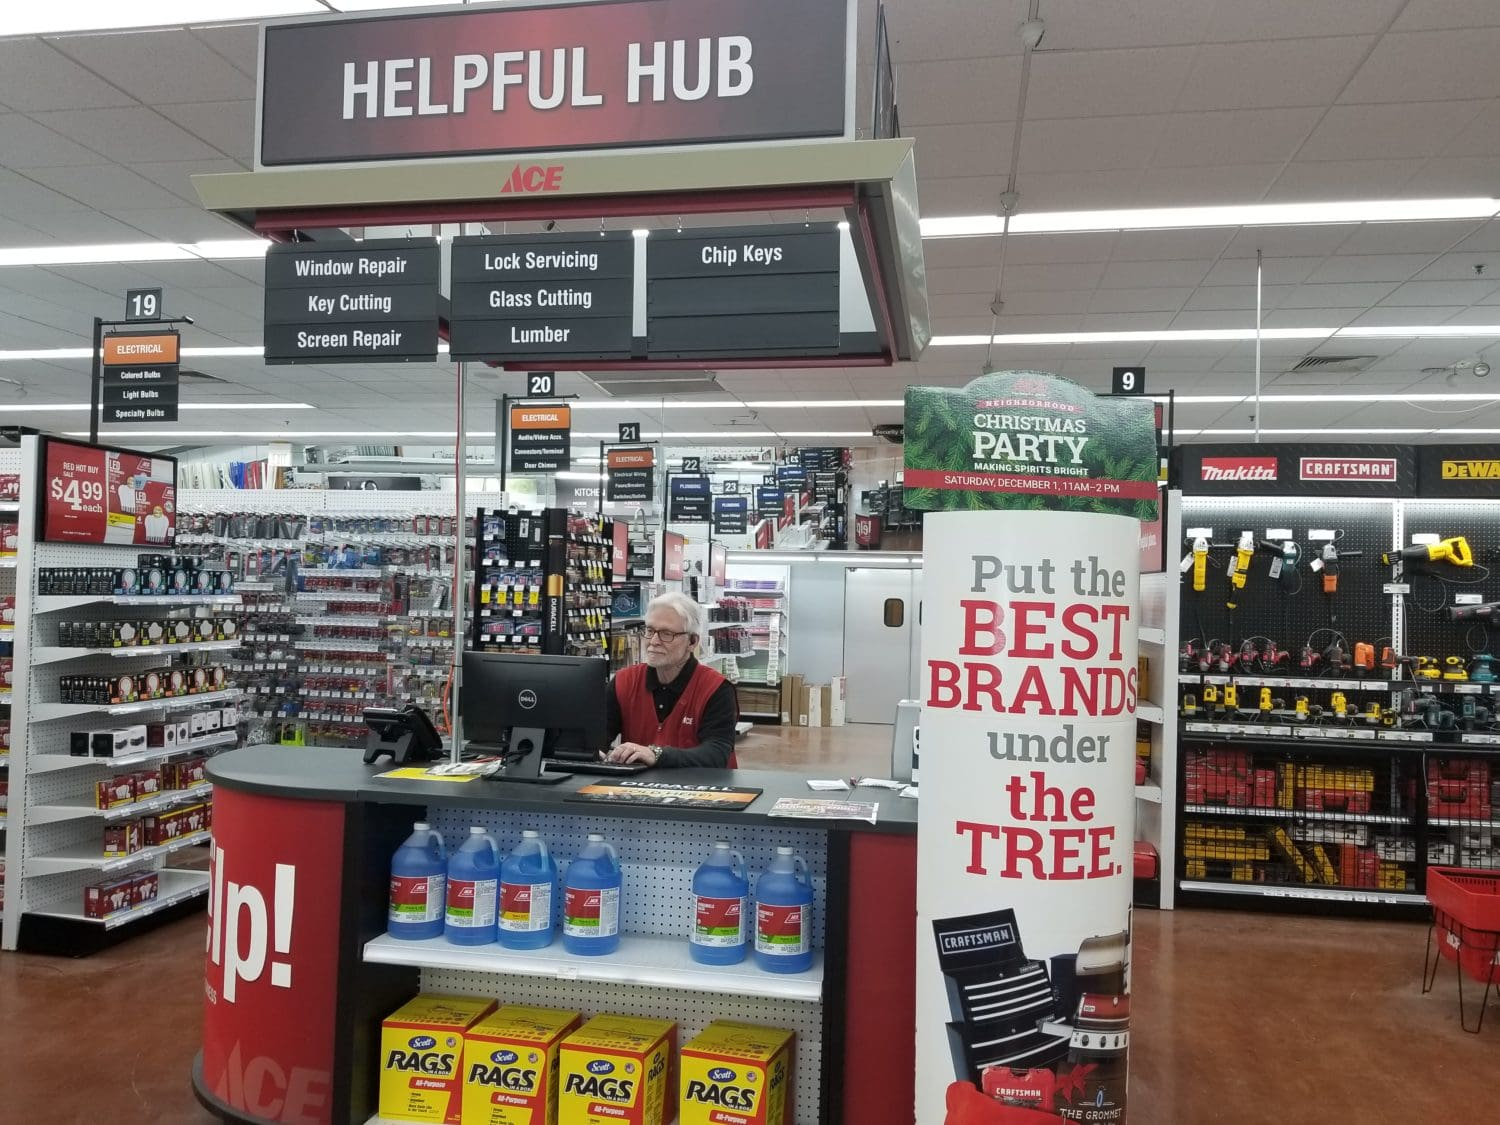 New Ace Hardware Store Holds Grand Opening Dec  1-2 - Focus Daily News